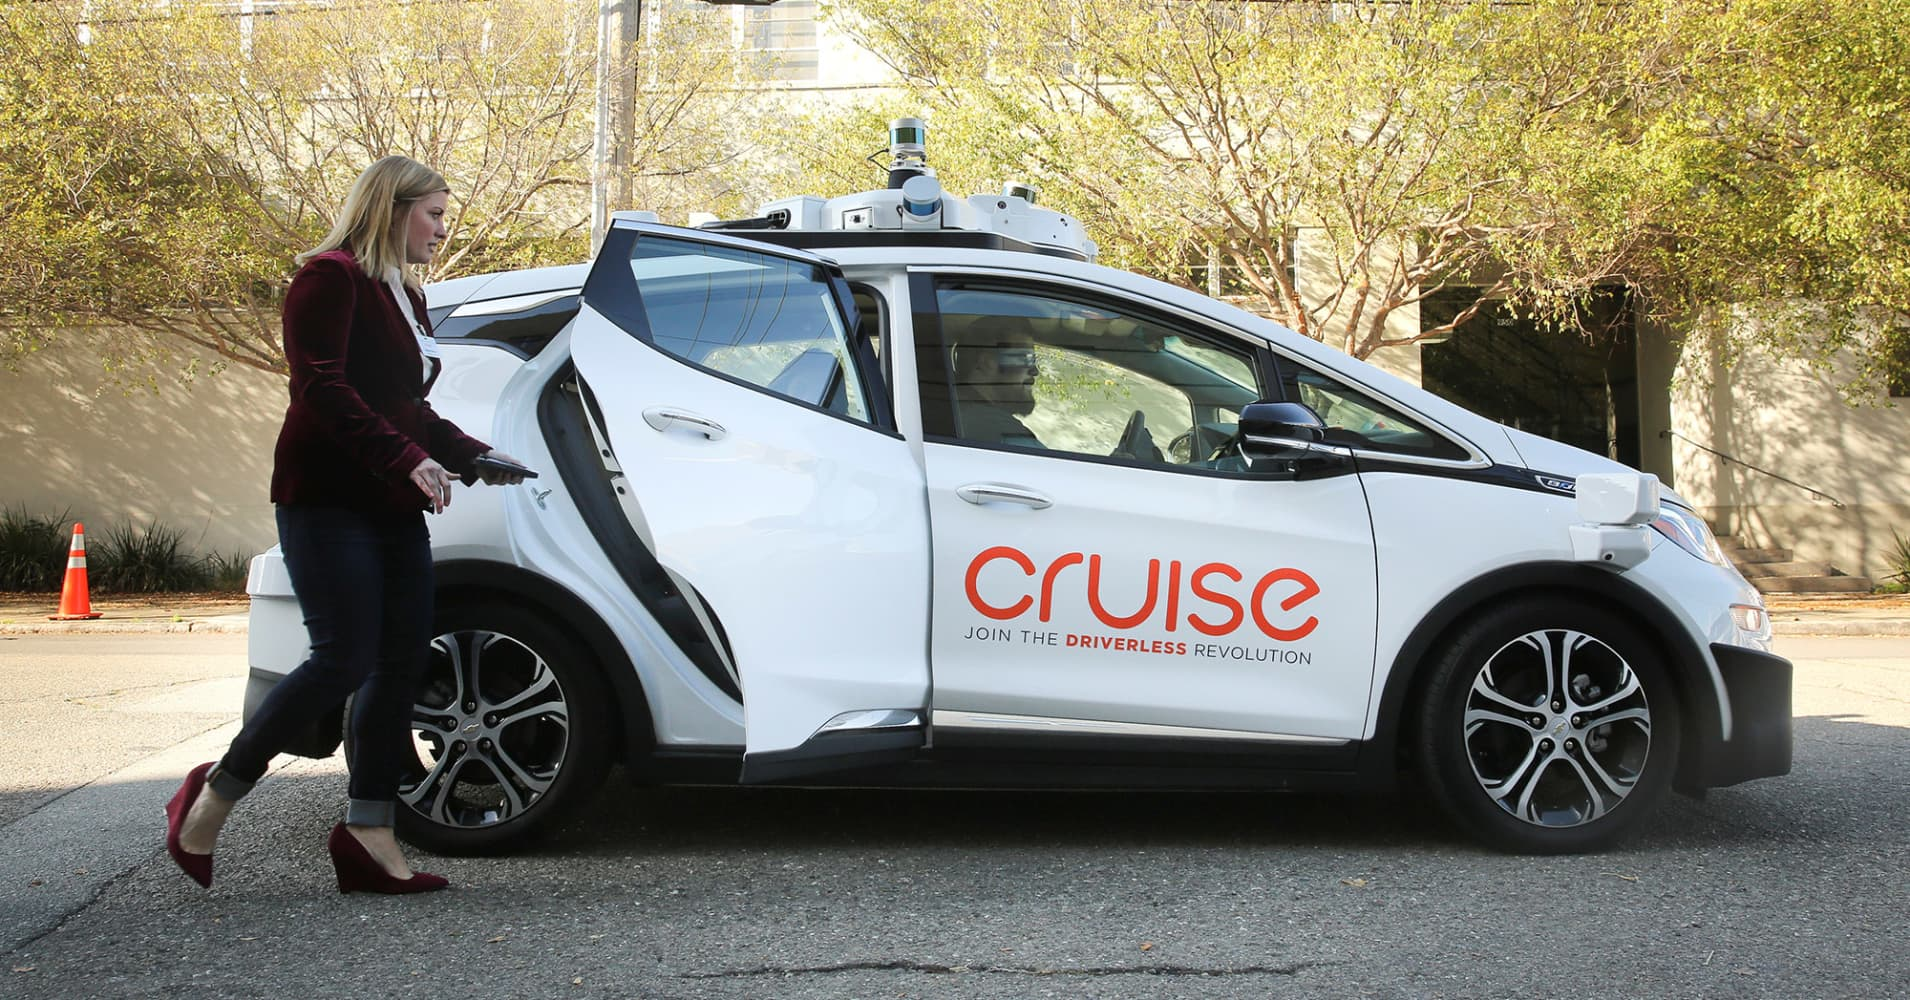 General Motors is a 'raging bull' opportunity in autonomous car space: Citigroup